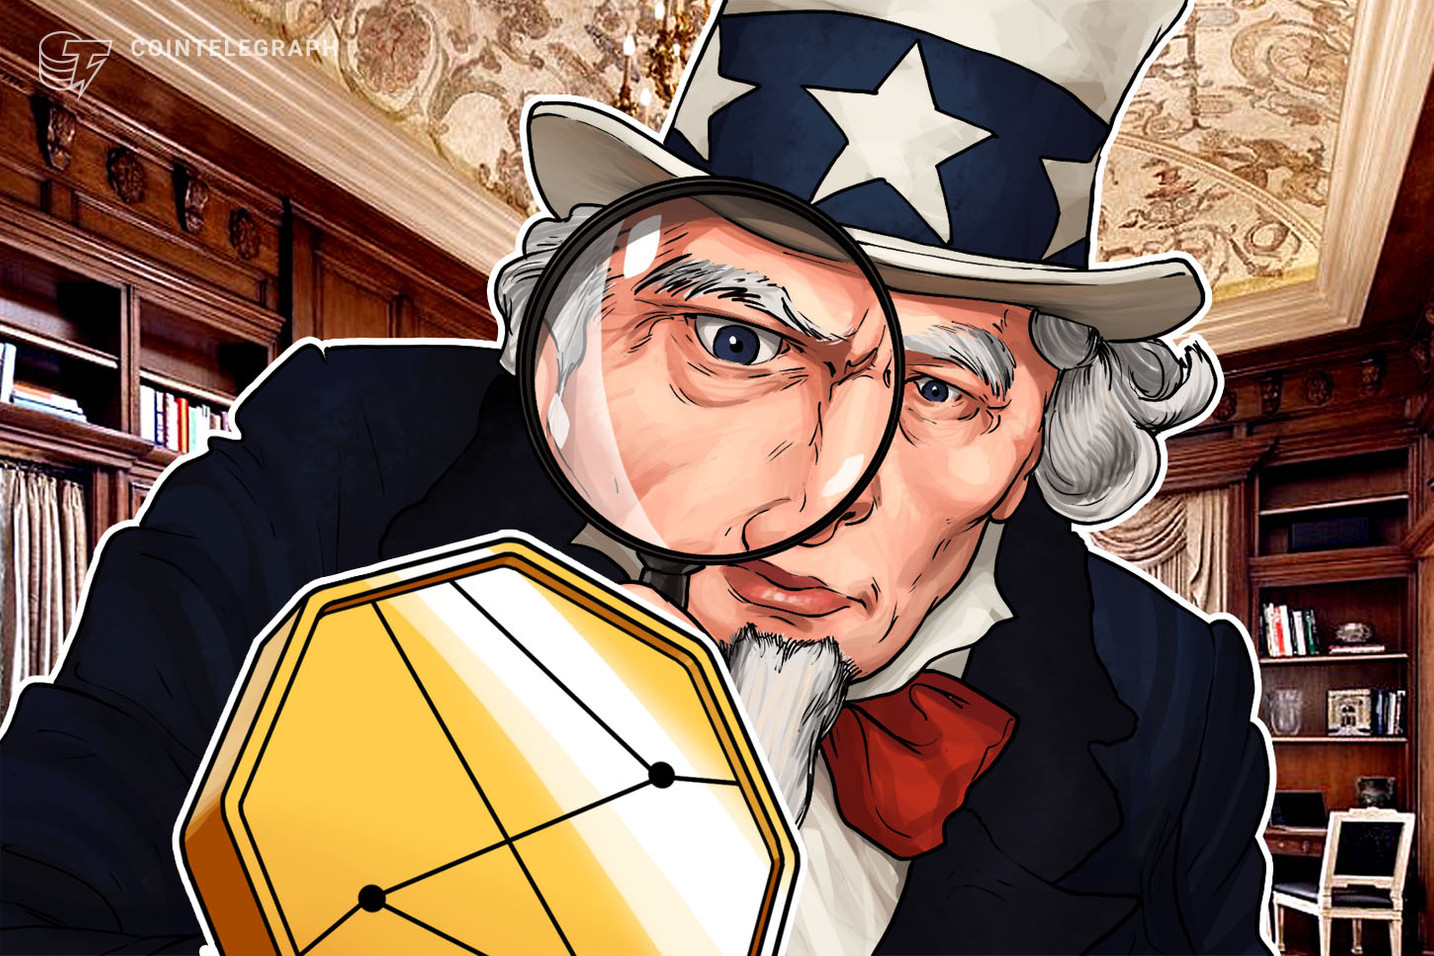 US Secretary of State Wants to Regulate BTC Like Other E-Transactions